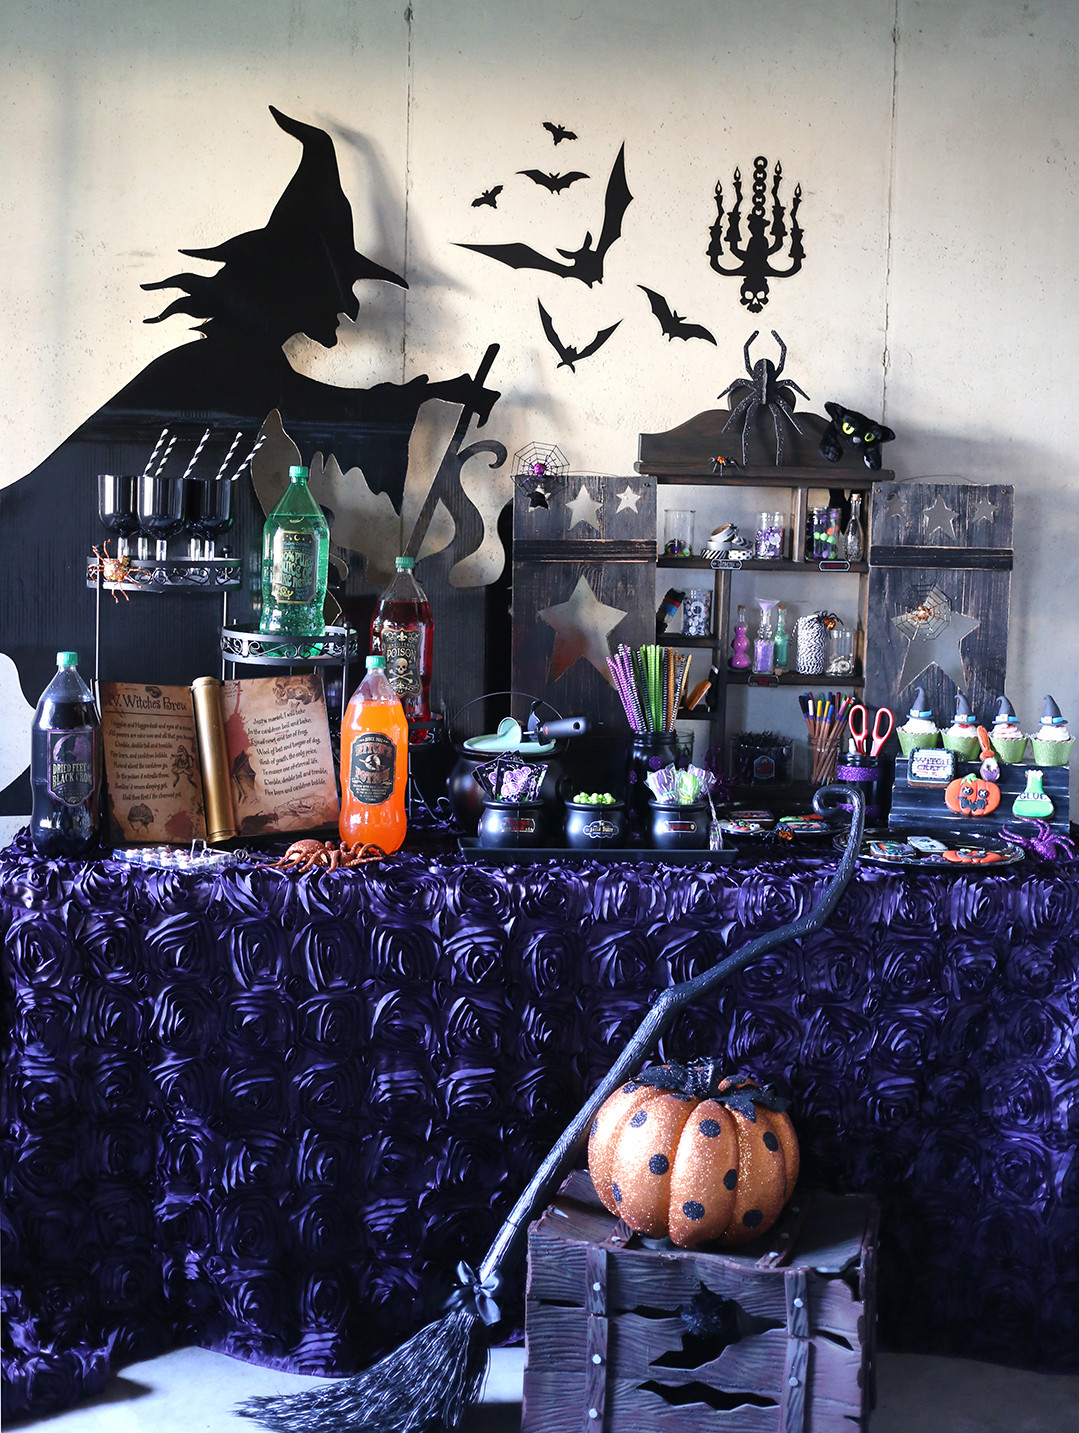 Best ideas about Halloween Theme Birthday Party . Save or Pin Throw a Crafty Witch Themed Halloween Party Now.